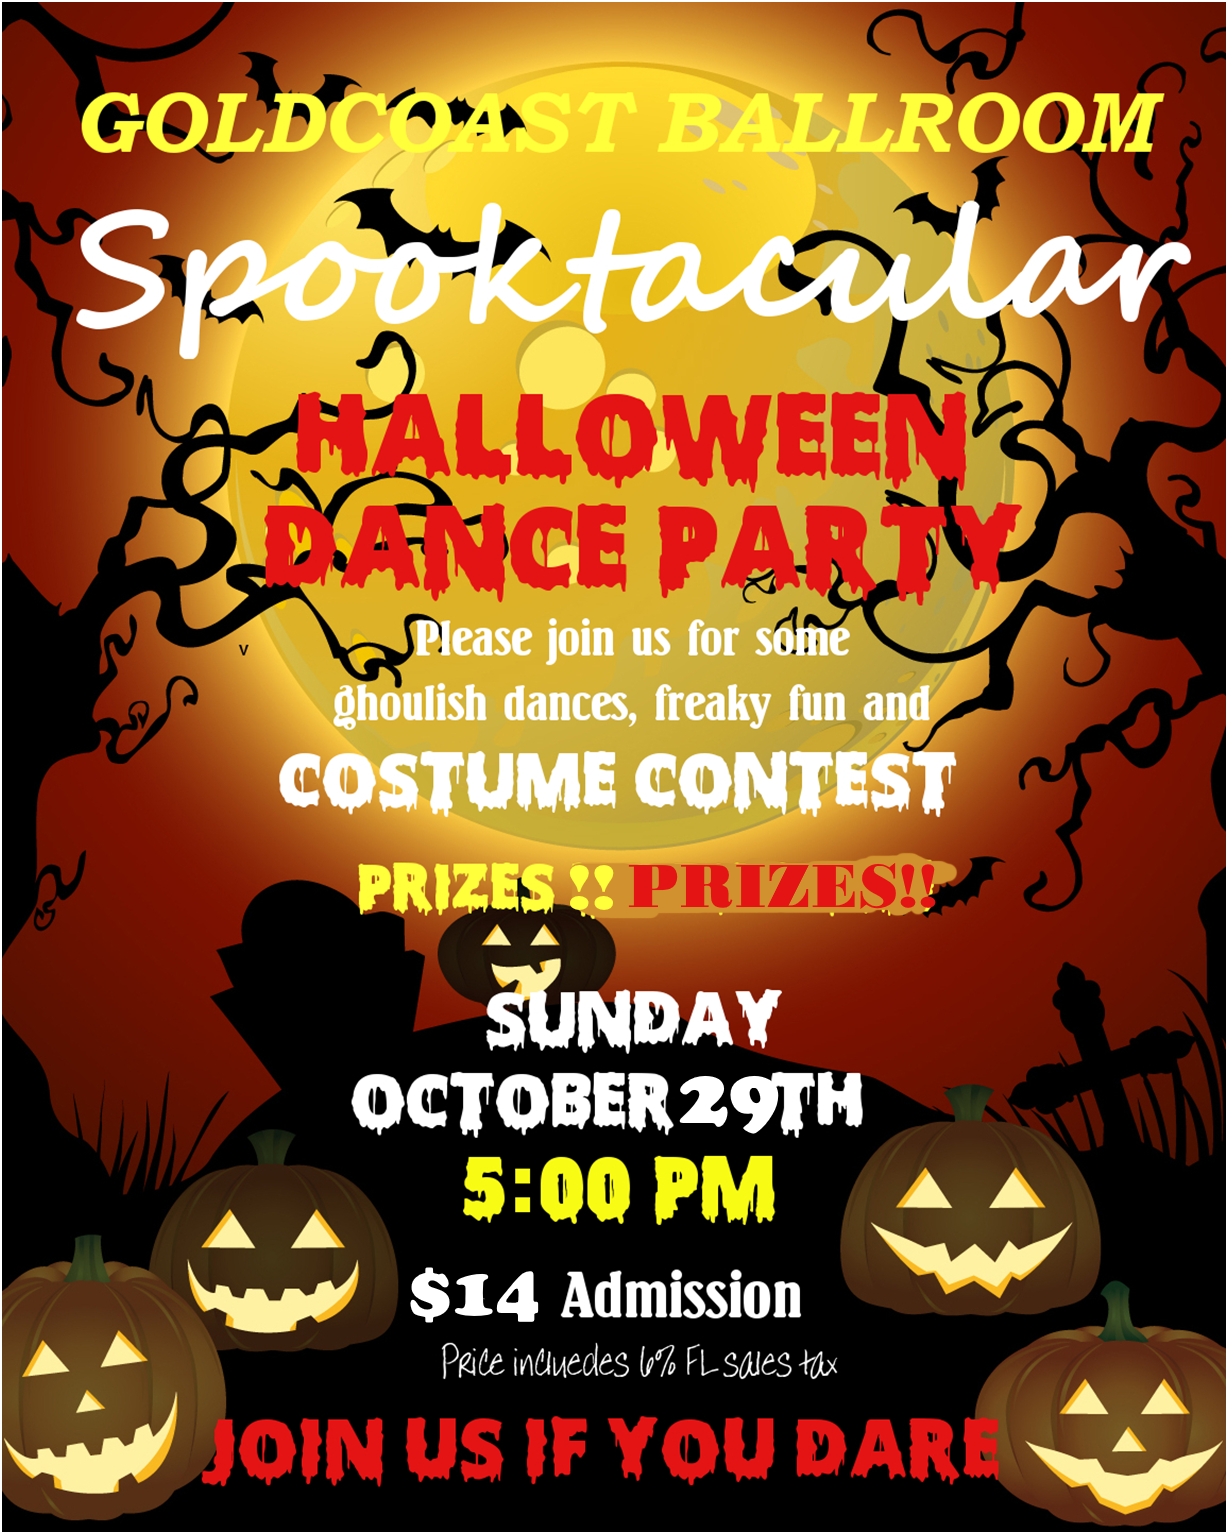 Halloween Party & Costume Contest Sunday, October 29, 2017